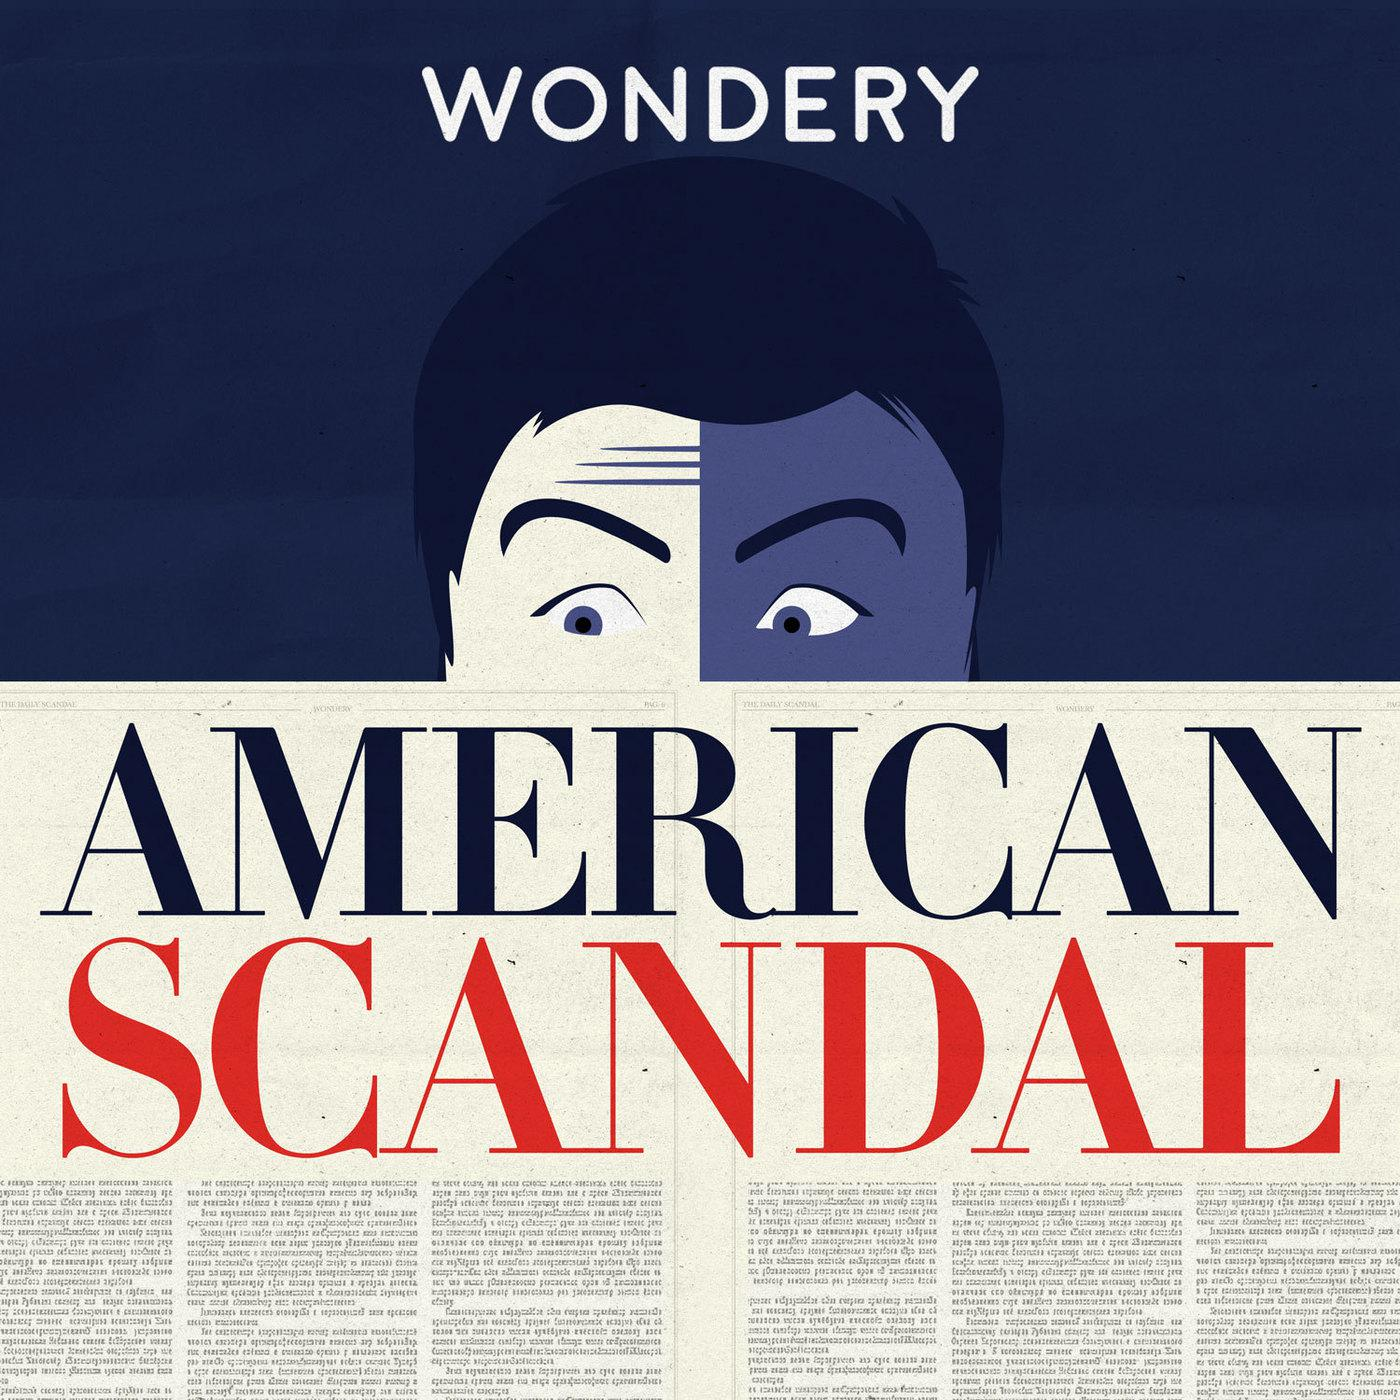 American Scandal (podcast) - Wondery | Listen Notes